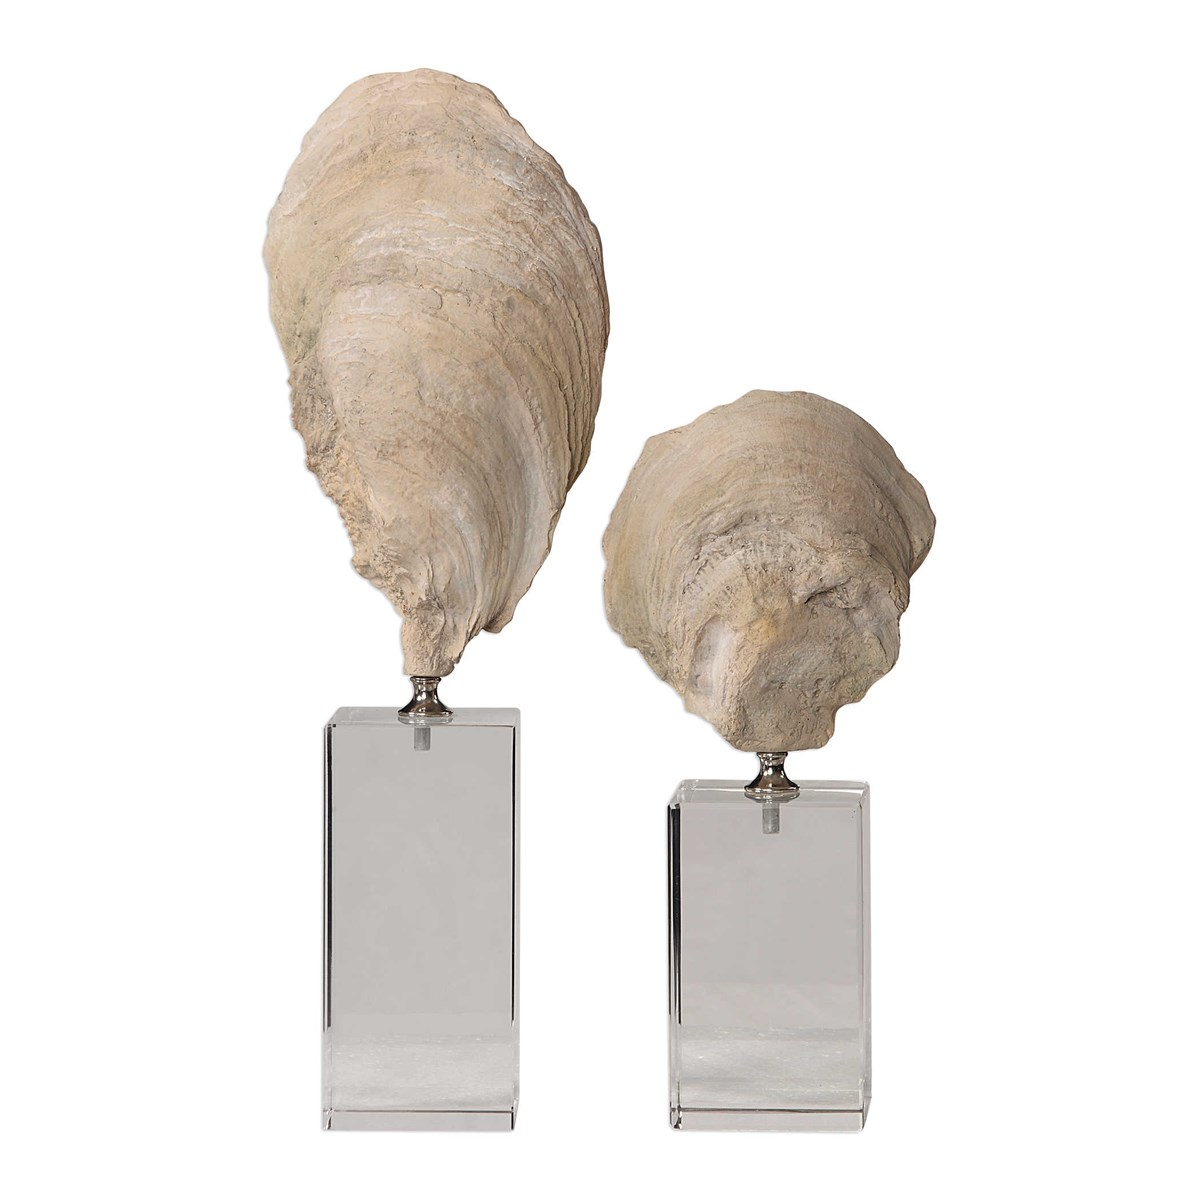 Oyster Shell on Stand-Lg. $120.00 Sm. $92.00